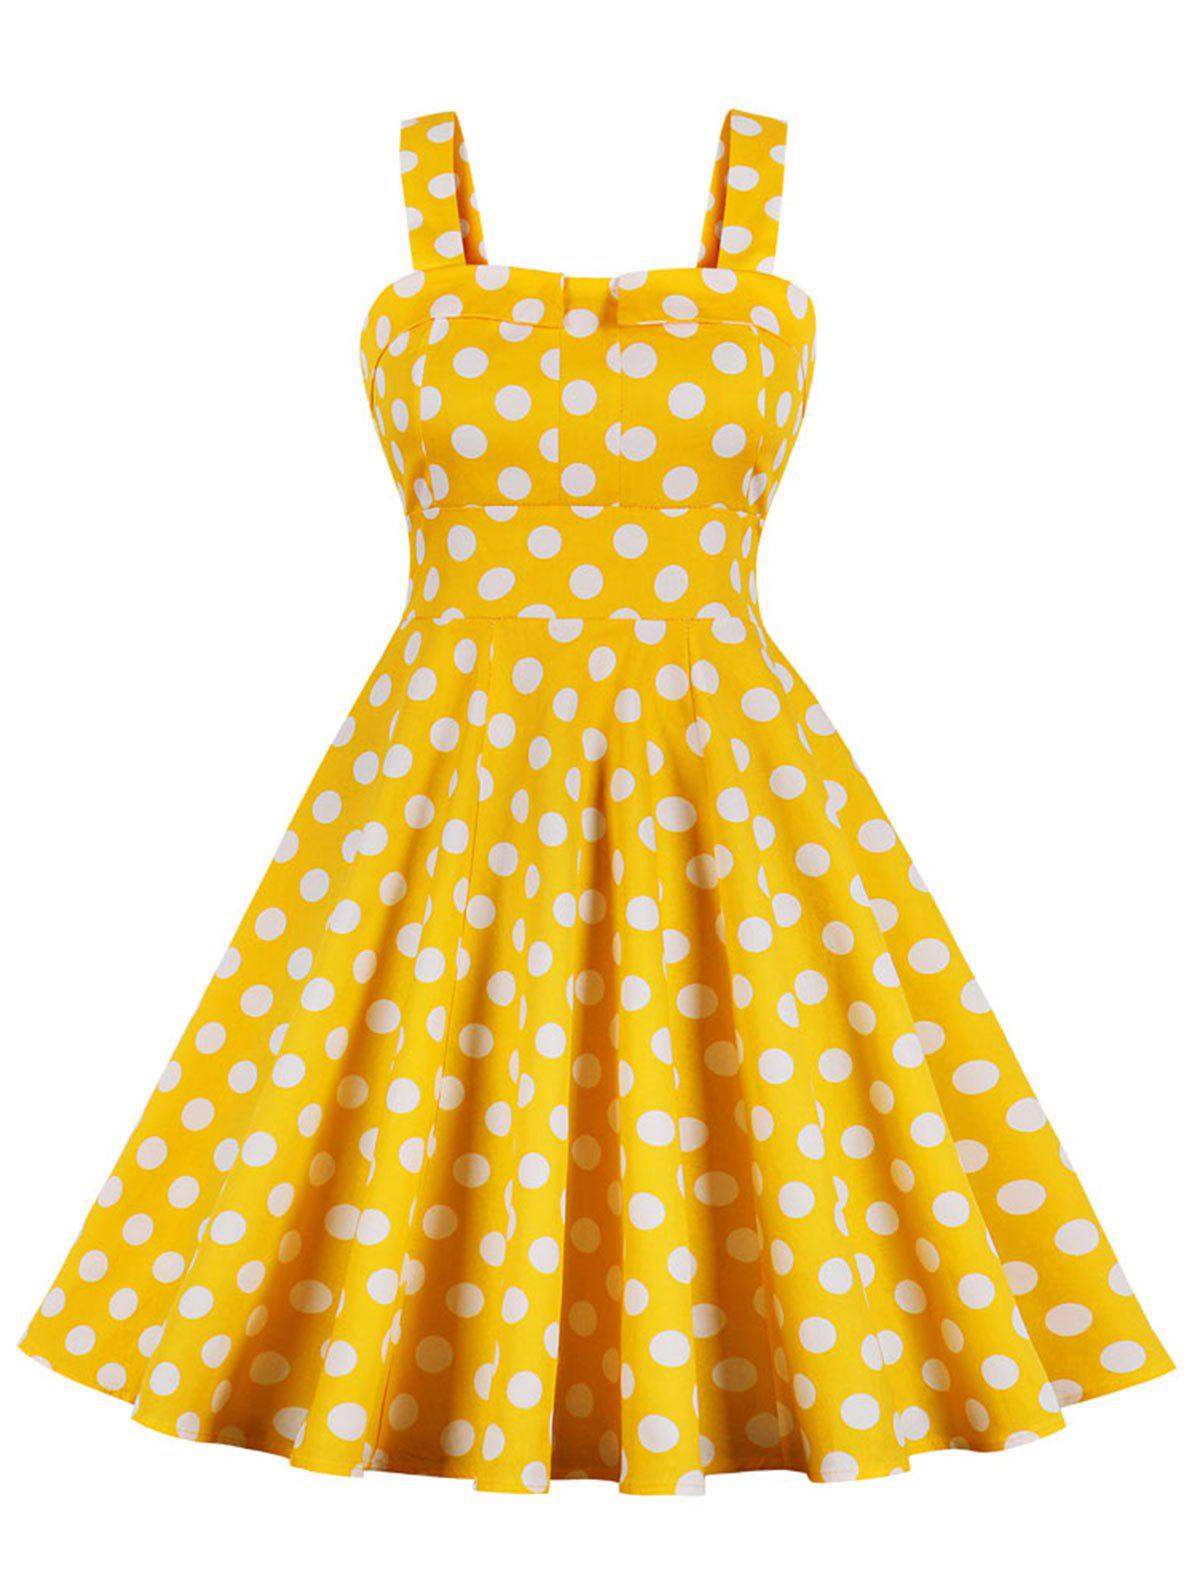 Best Vintage Polka Dot High Waist Swing Dress